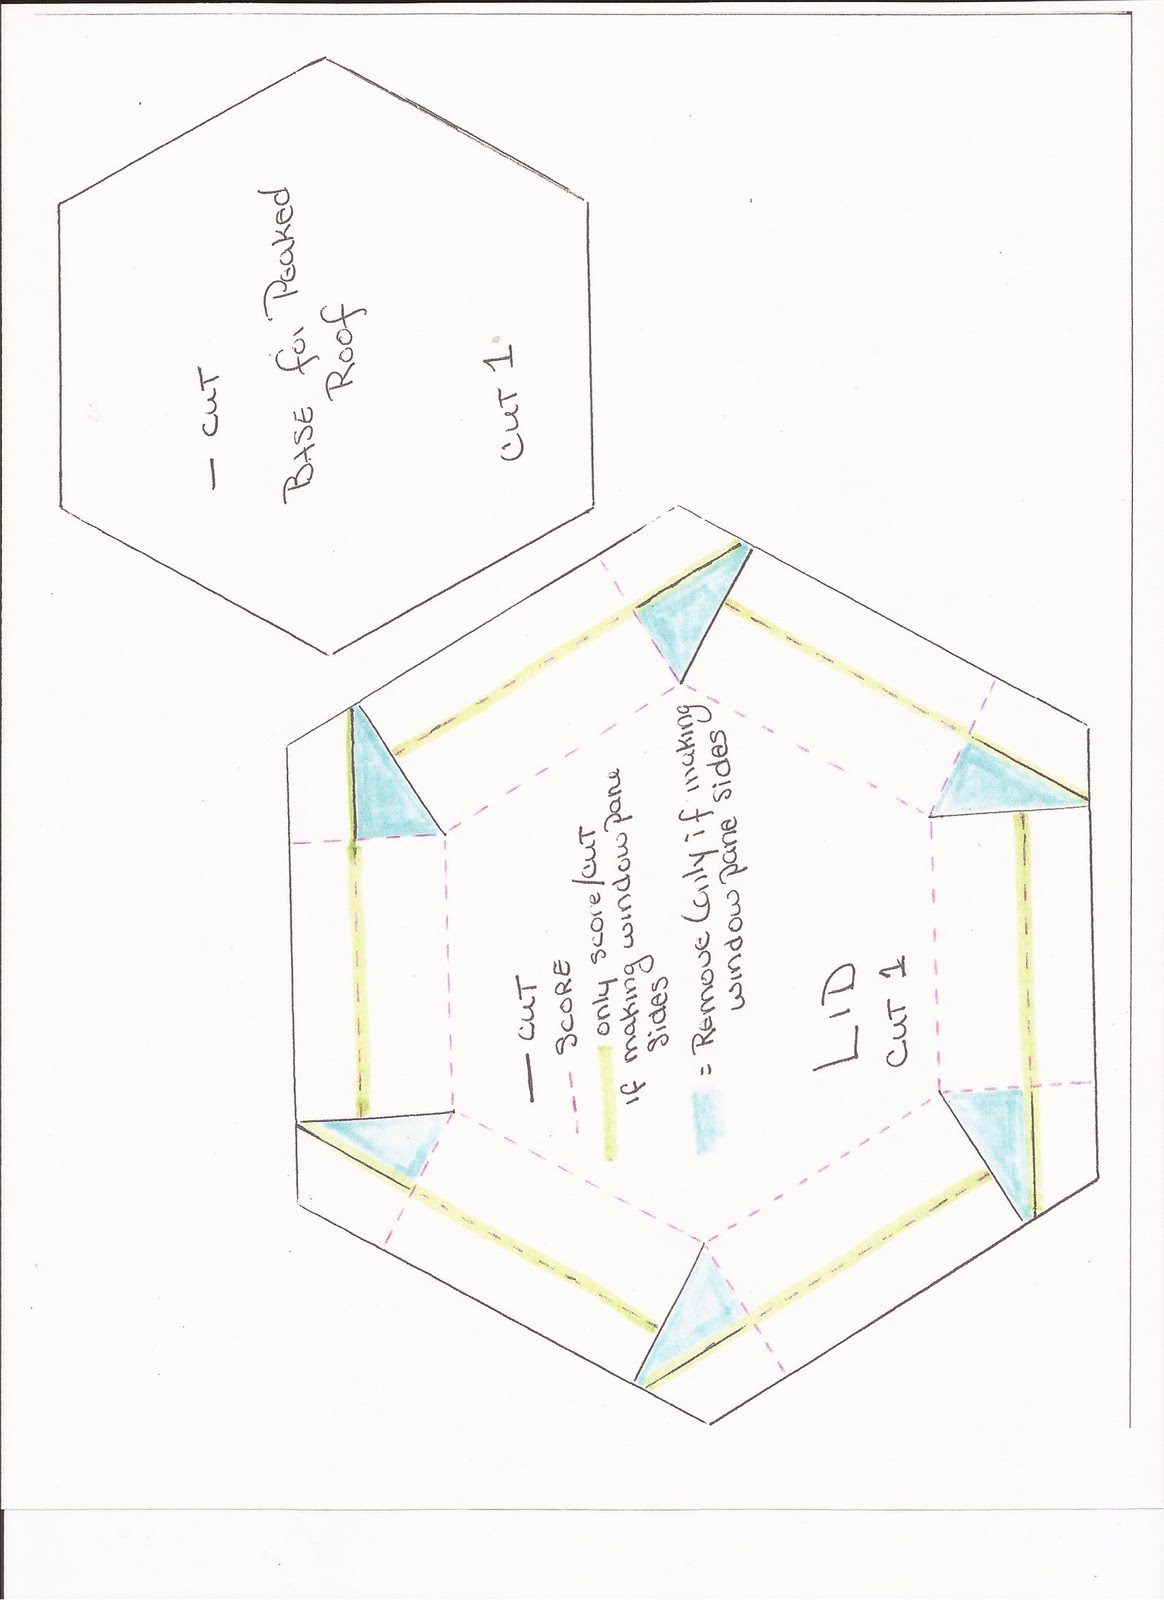 File White House FloorG Plan together with Printable Shapes in addition Printable Shapes besides Geometry  s in addition Judaism hanukkah dreidelpattern. on 3d paper house template